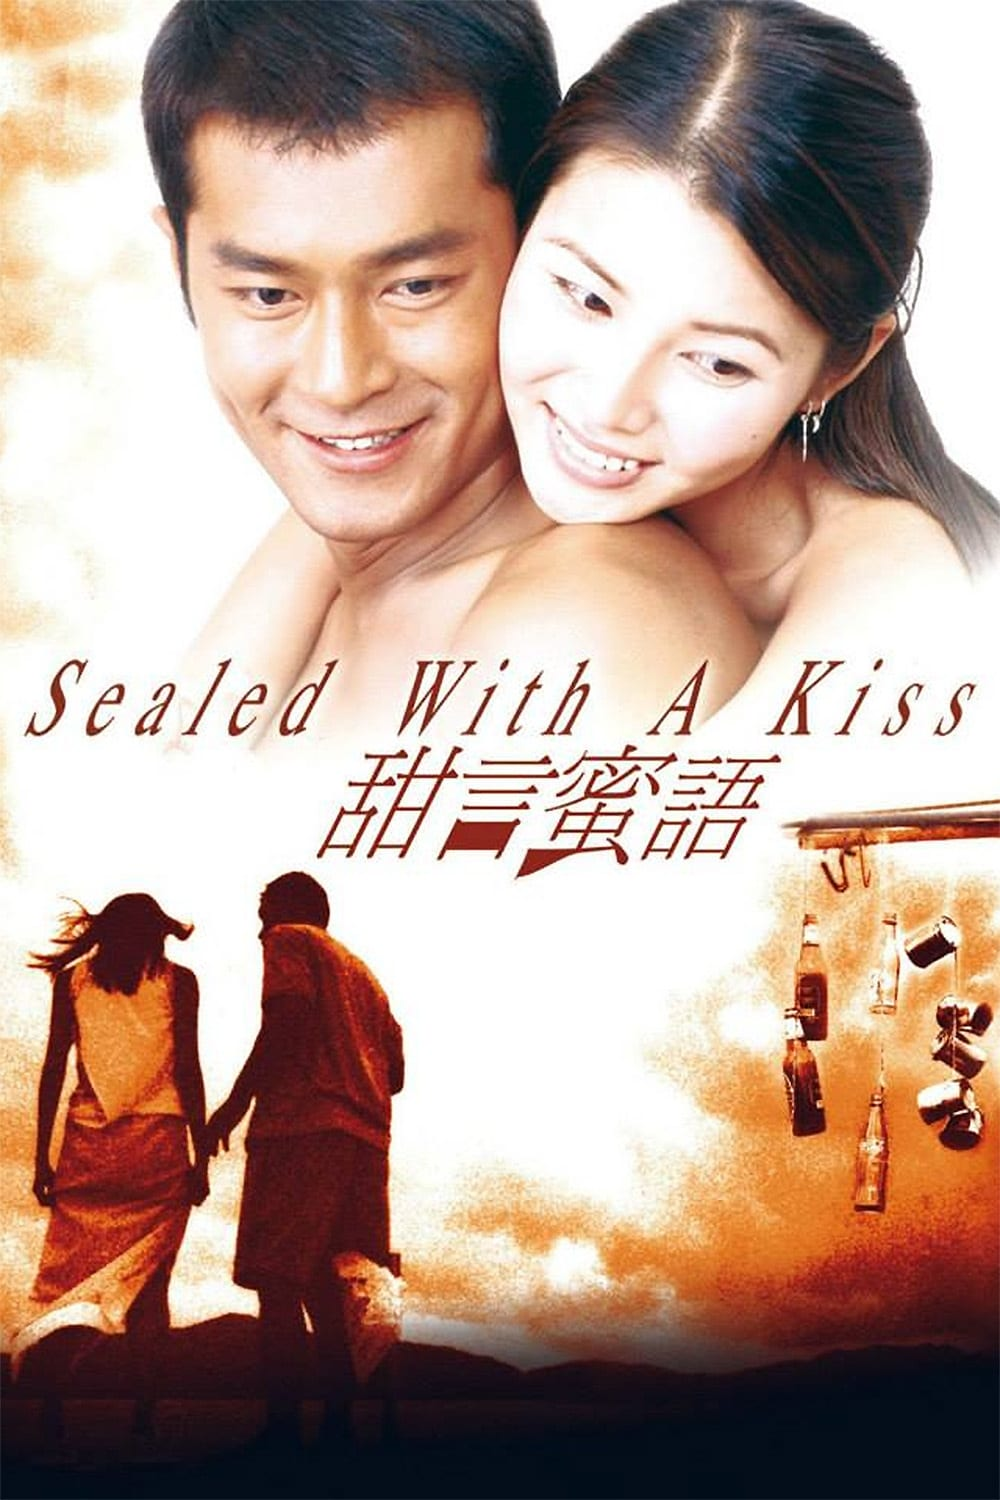 Sealed with a Kiss (1999)